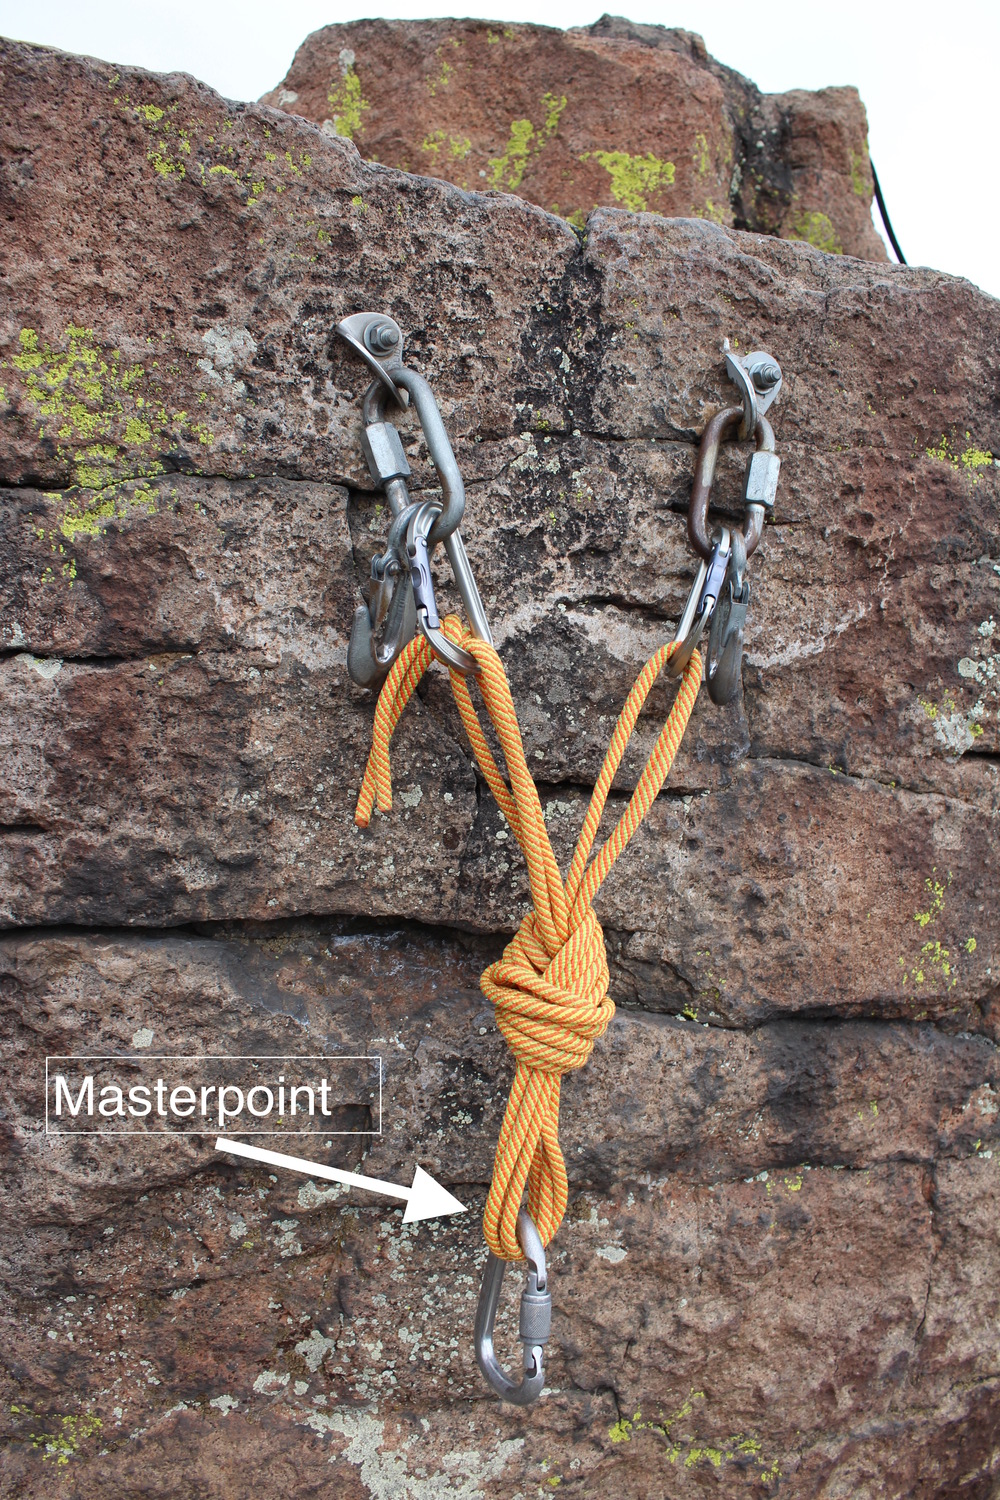 Similarly, a simple ponytail anchor with a cordellette provides a masterpoint with the effective strength of four strands of 7mm nylon cord.